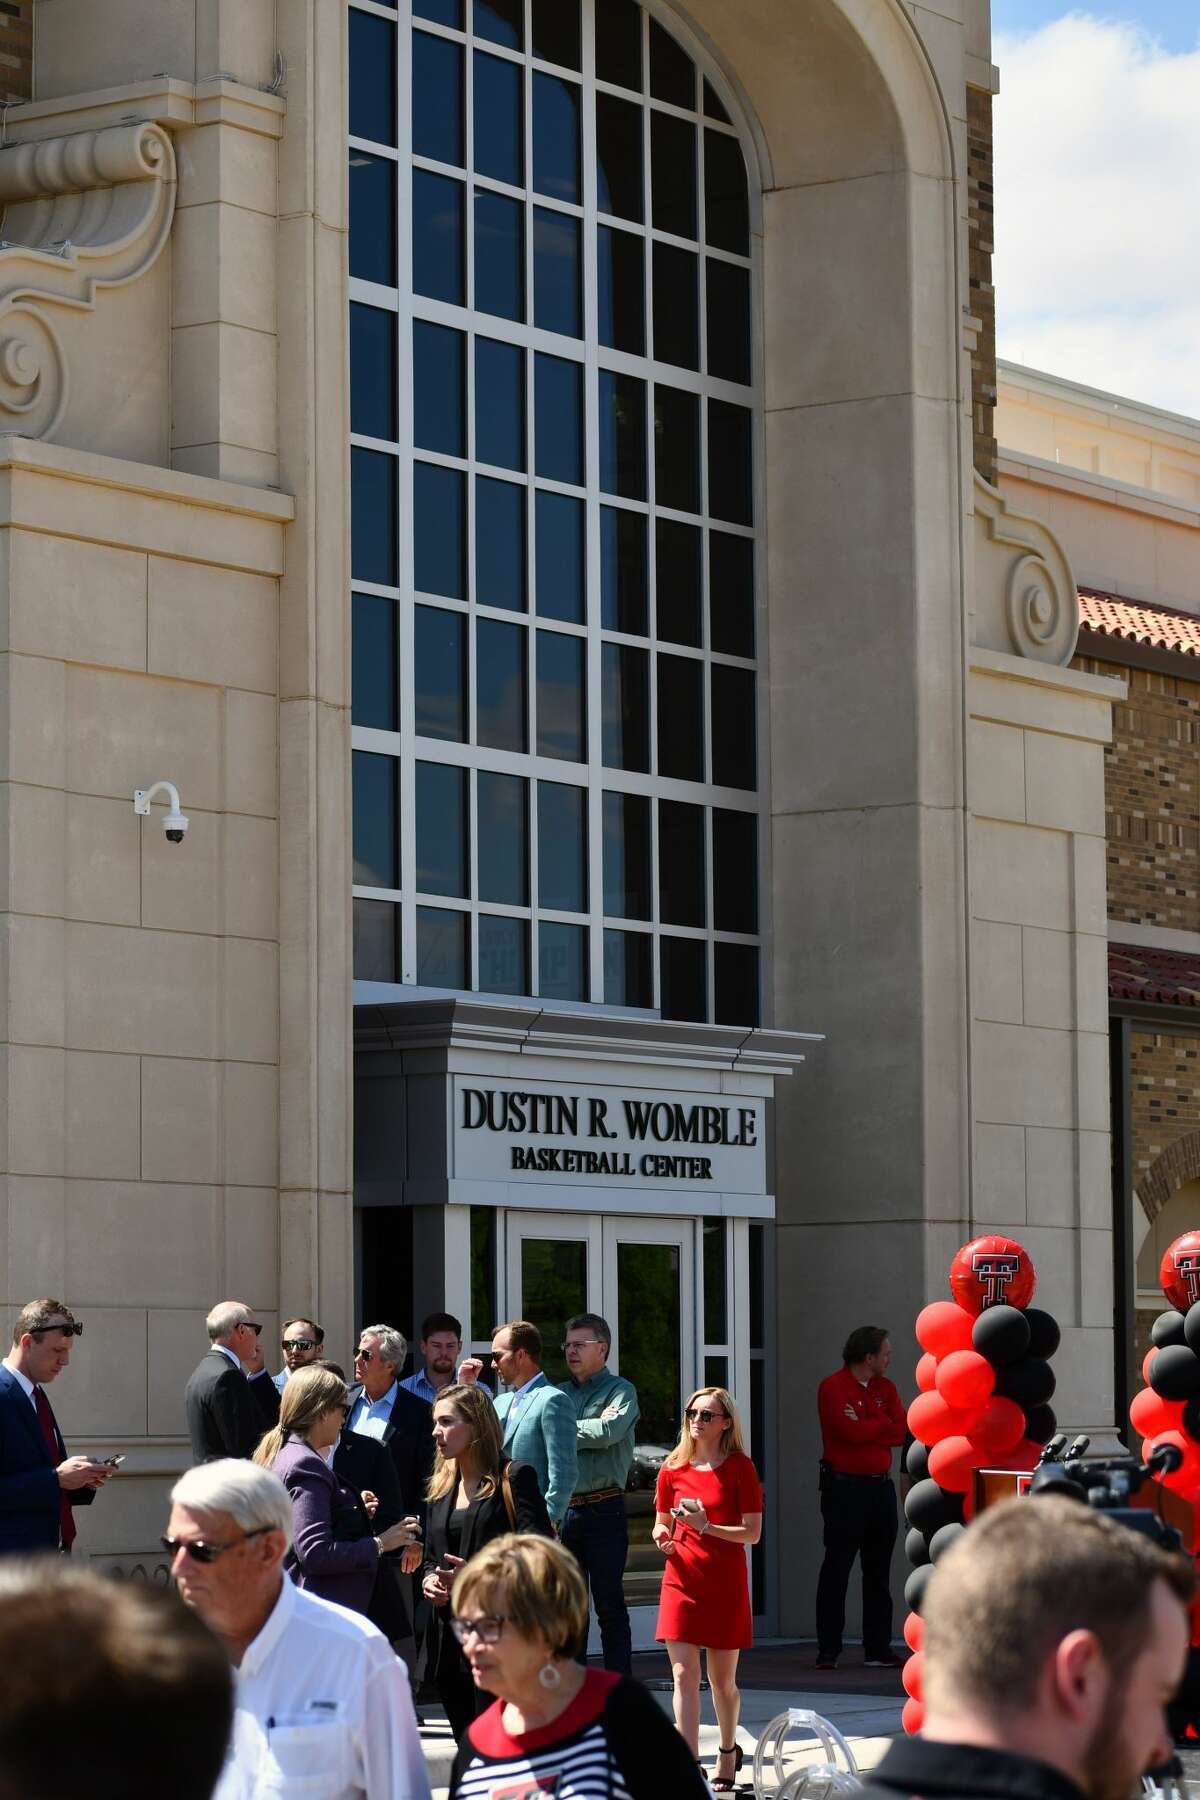 Texas Tech officially unveiled the Dustin R. Womble Basketball Center with a special ribbon cutting ceremony on Thursday at Lubbock.